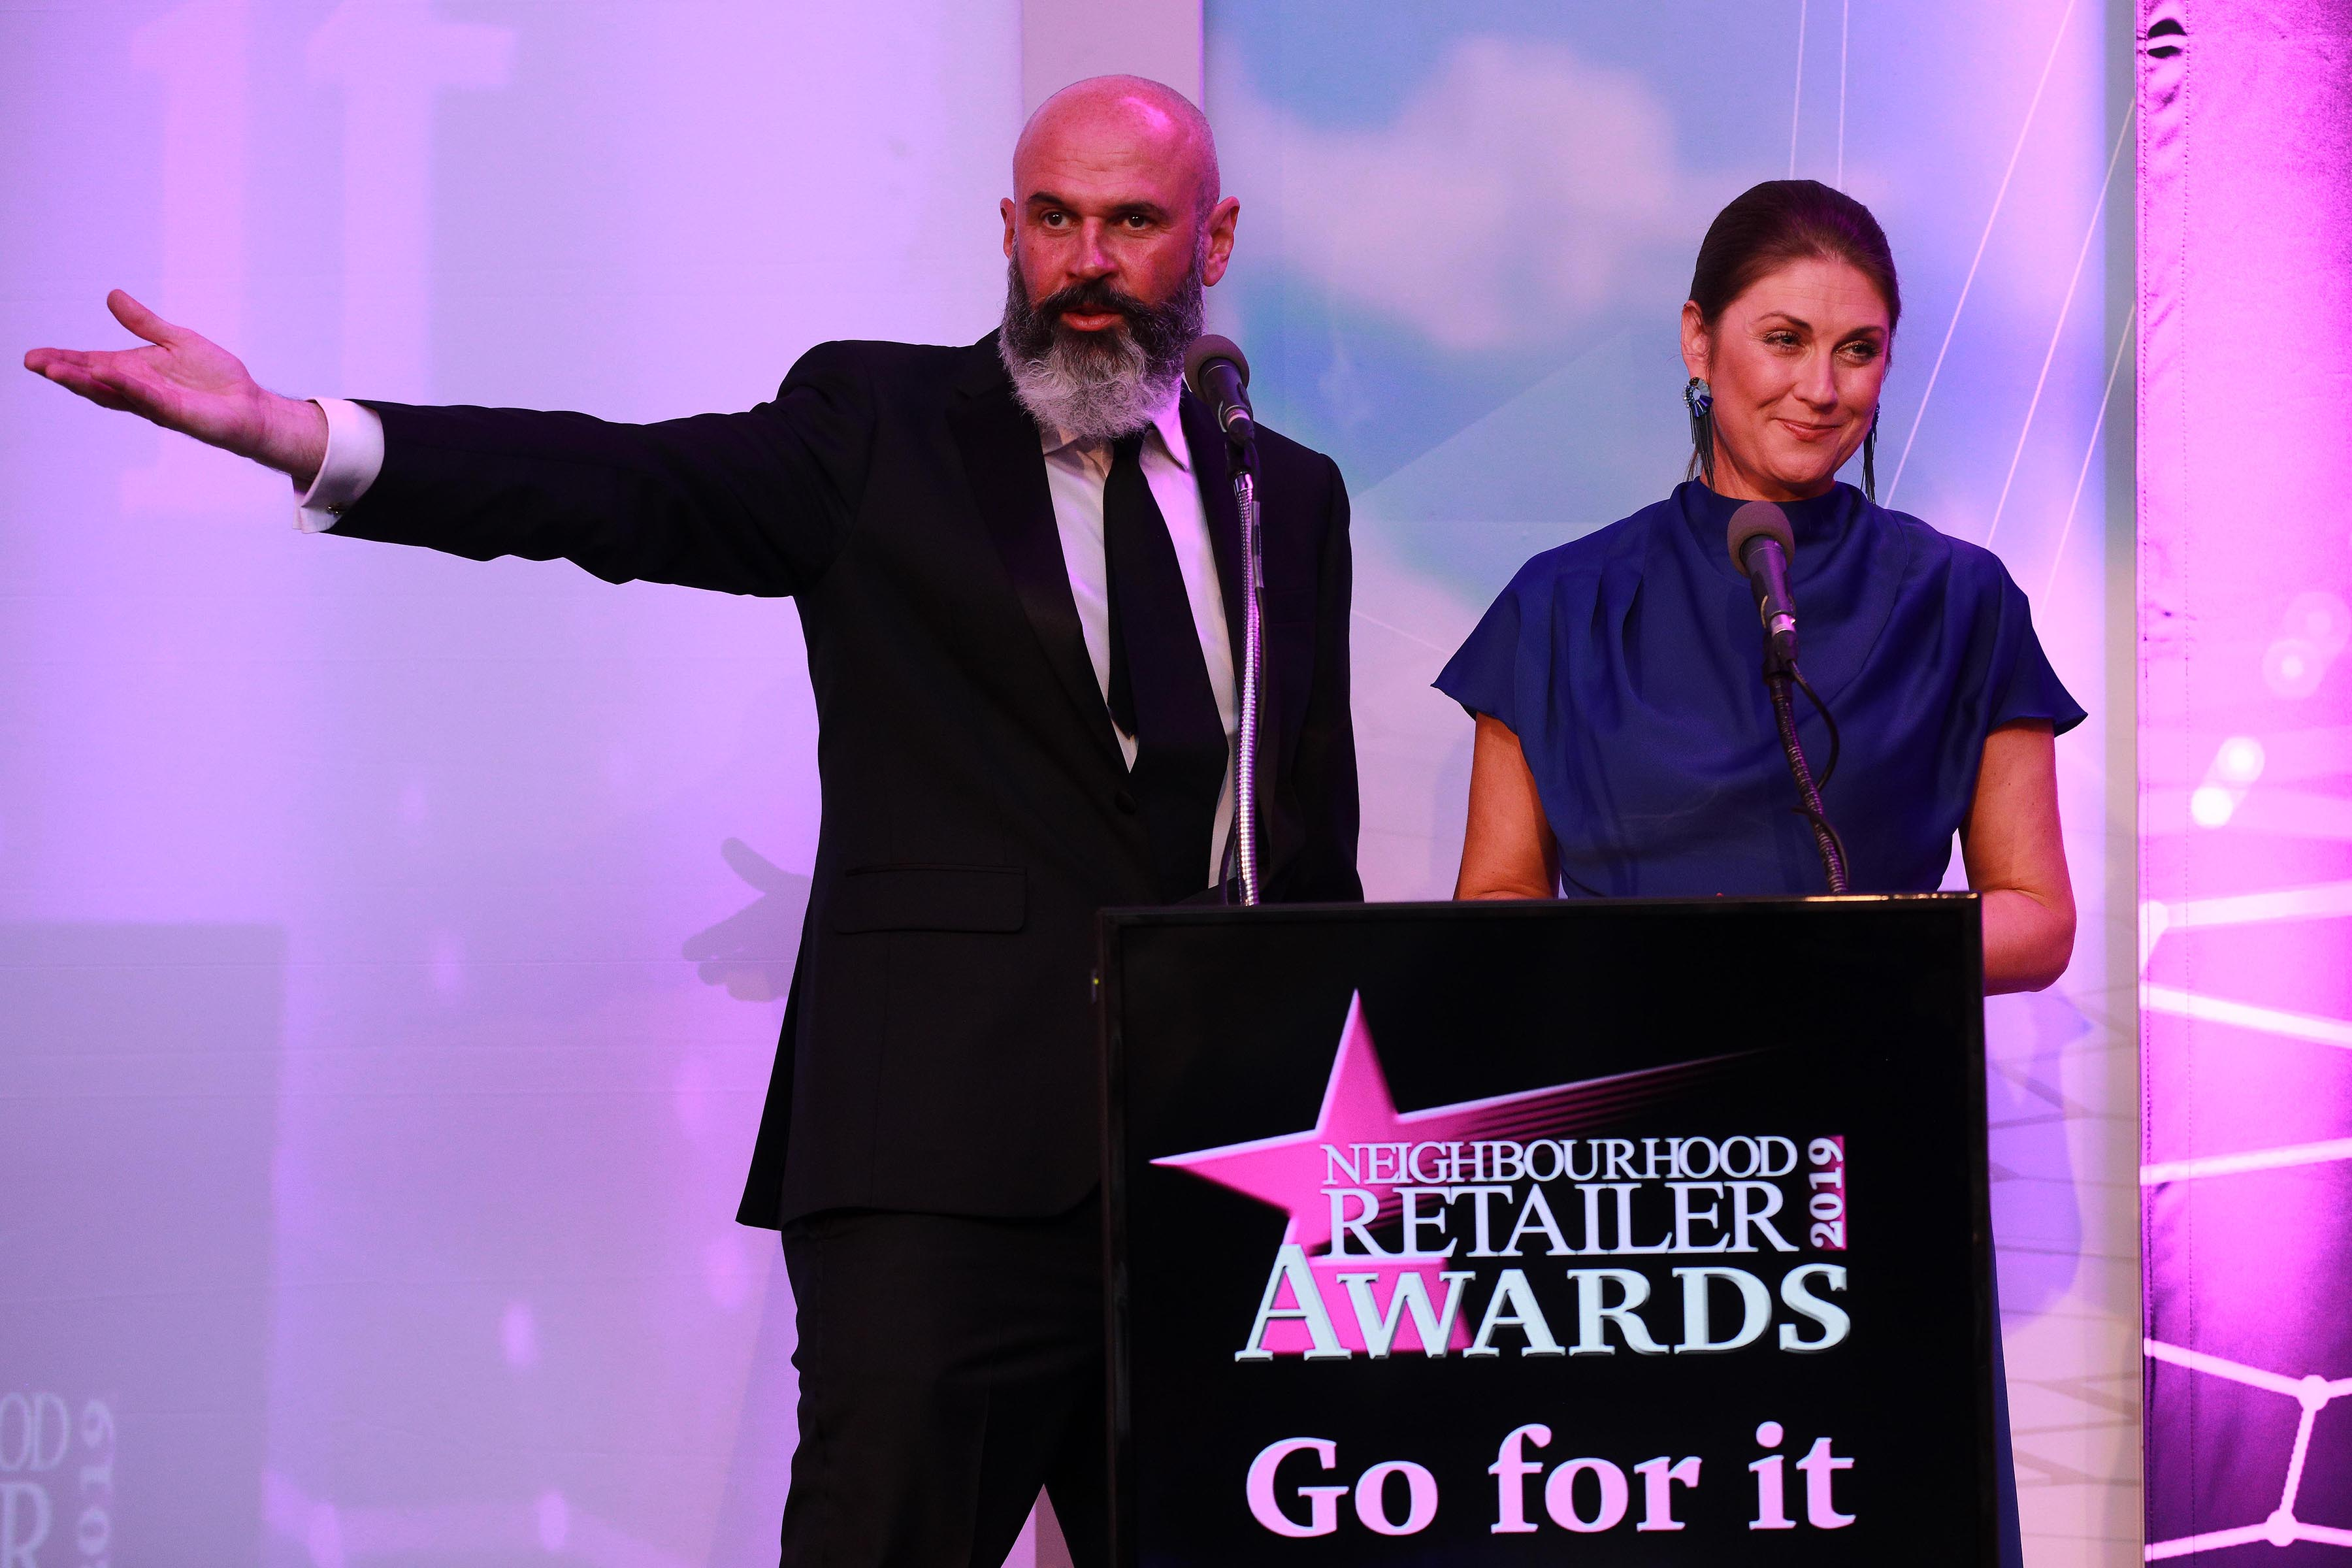 Neighbourhood Retailer Awards 38